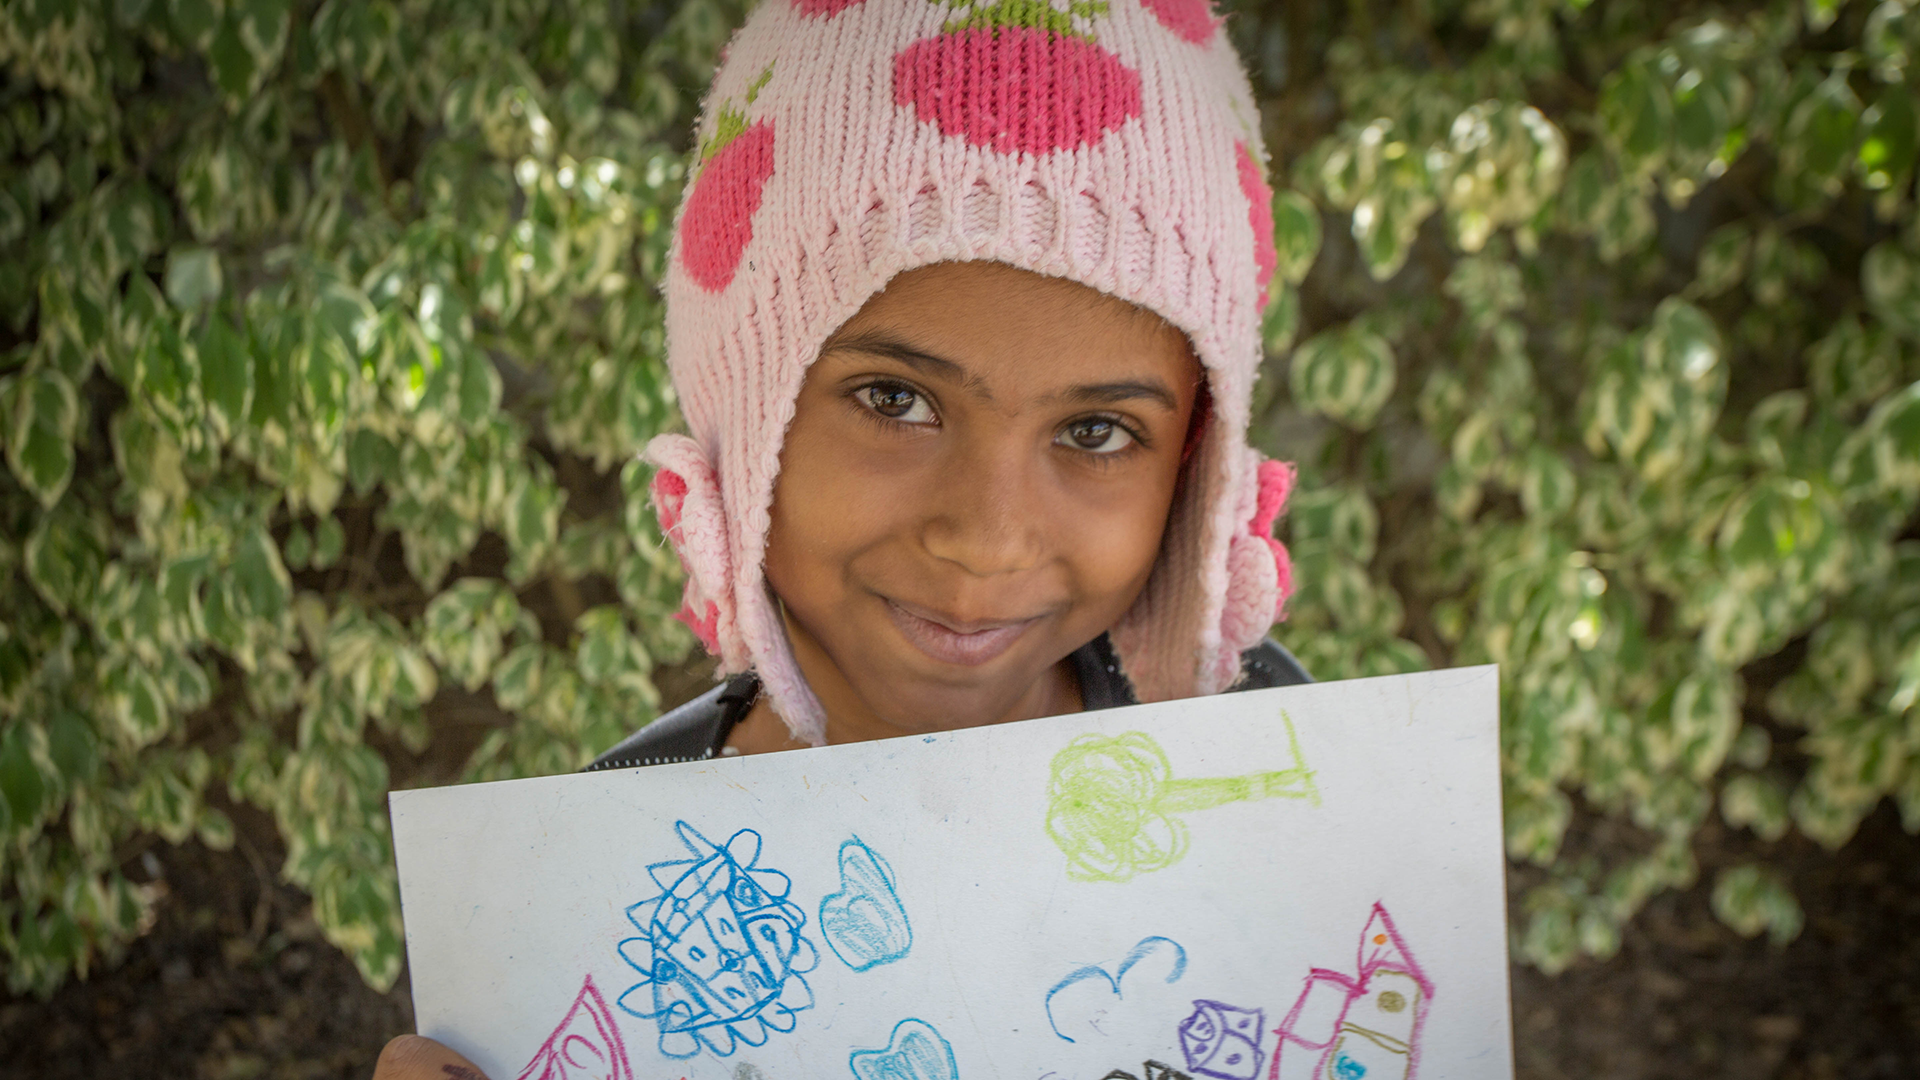 Monthly Donation - Regular donations provide us with a stable and long-term source of income to fund Save the Children's long-term programs and help children like Razan who are in desperate need of assistance.